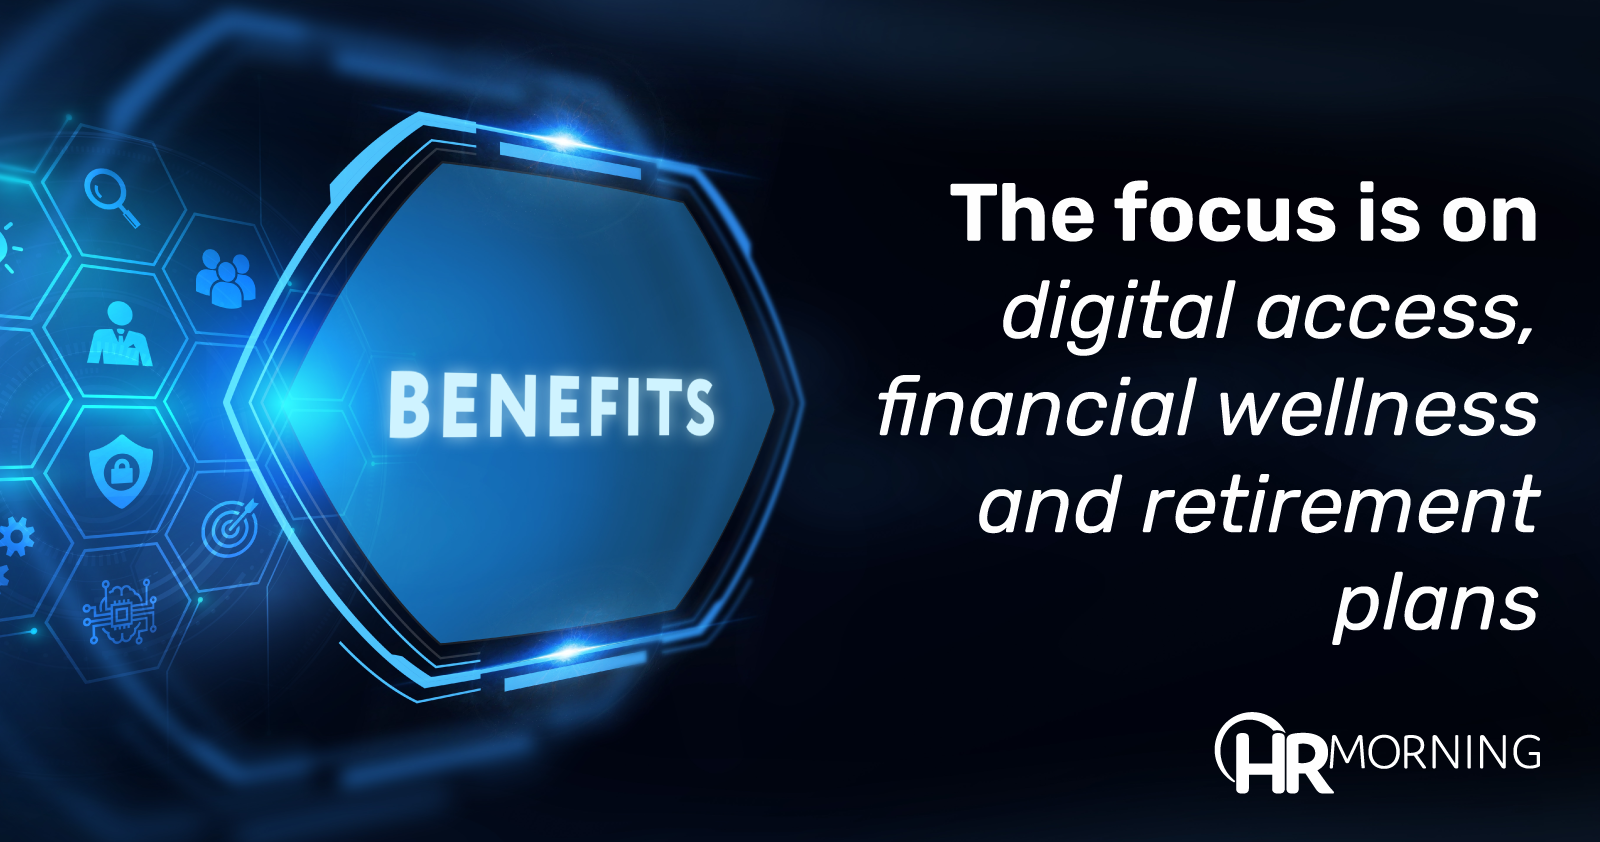 the focus is on digital access financial wellness and retirement plans